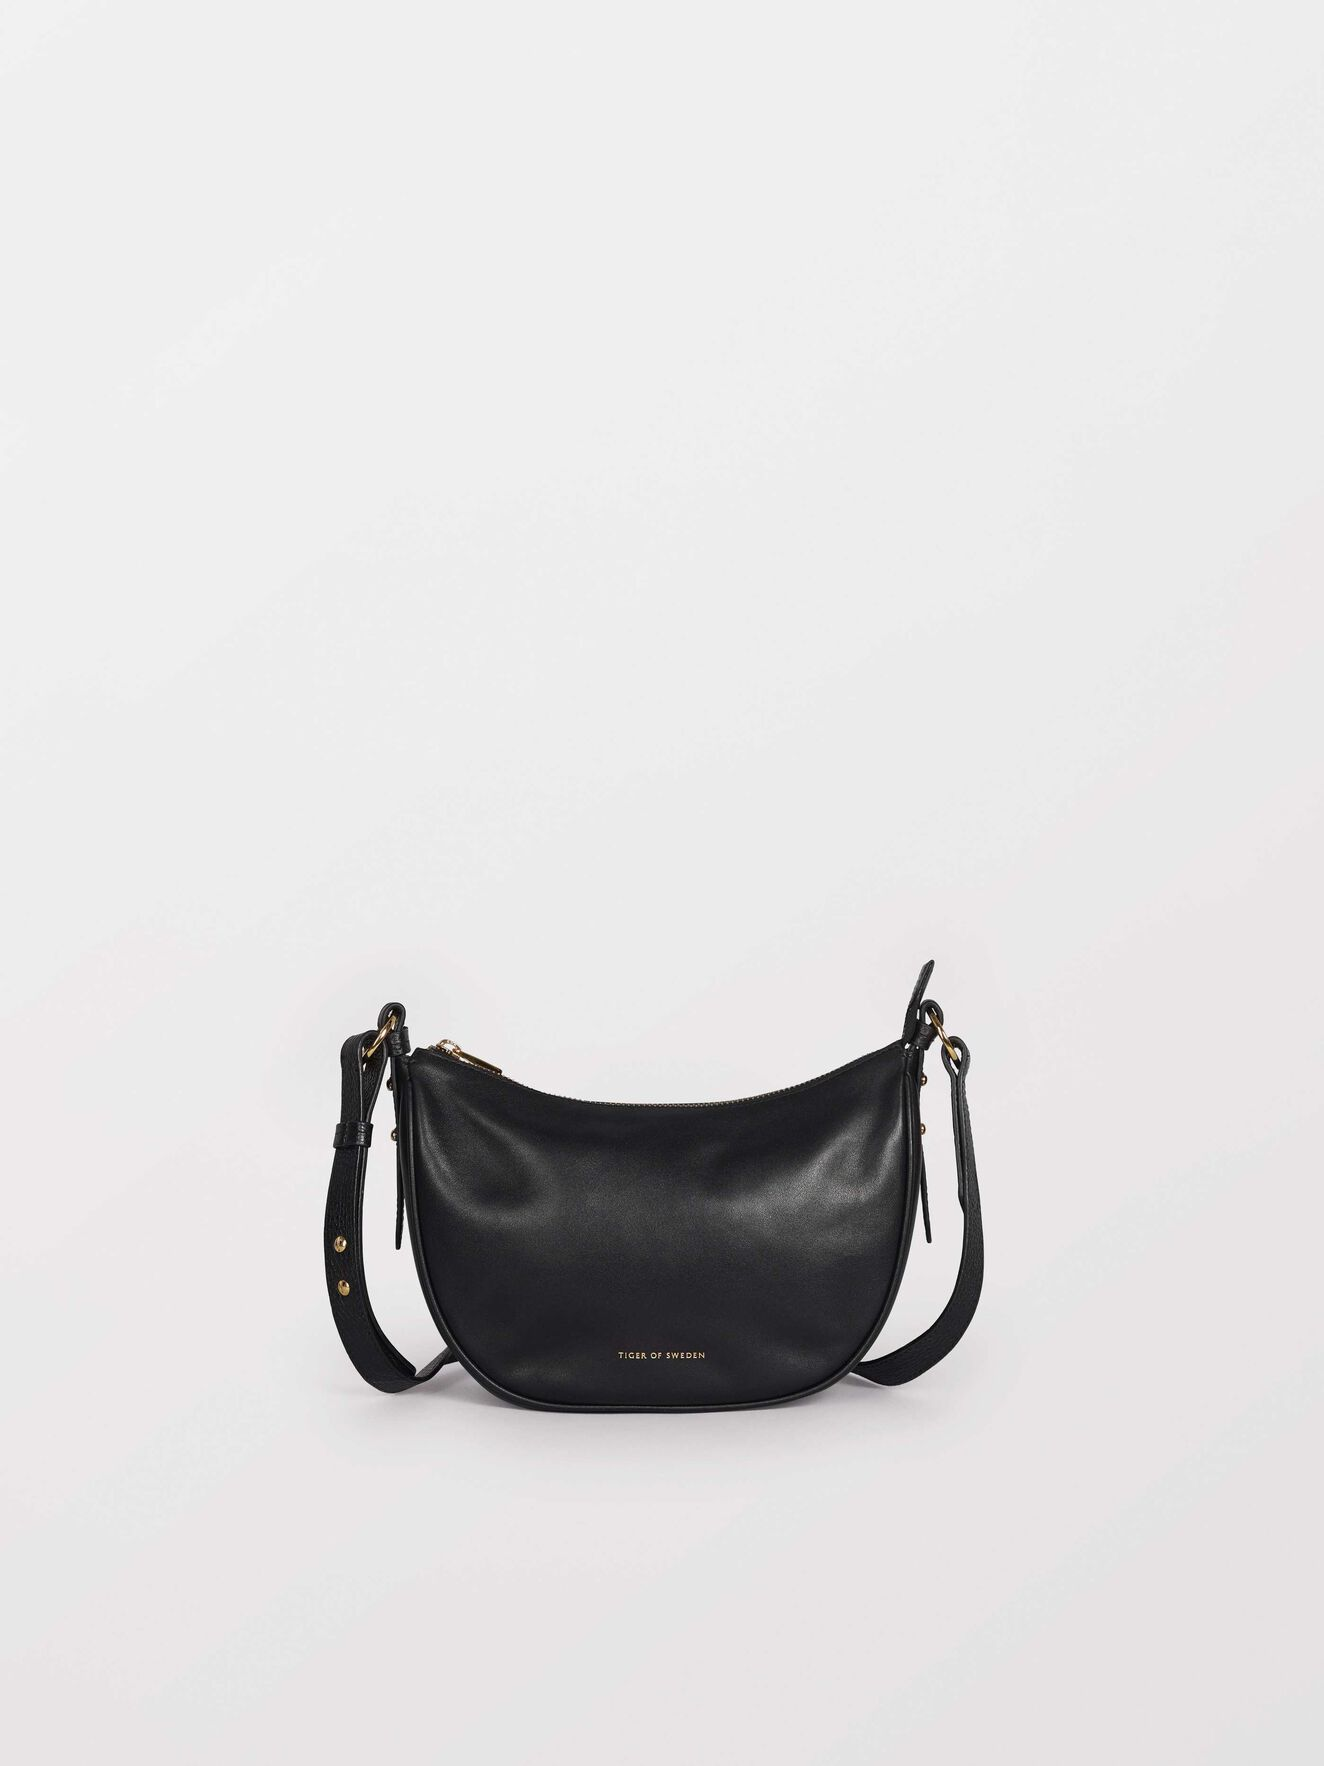 Borziama Bag in Black from Tiger of Sweden